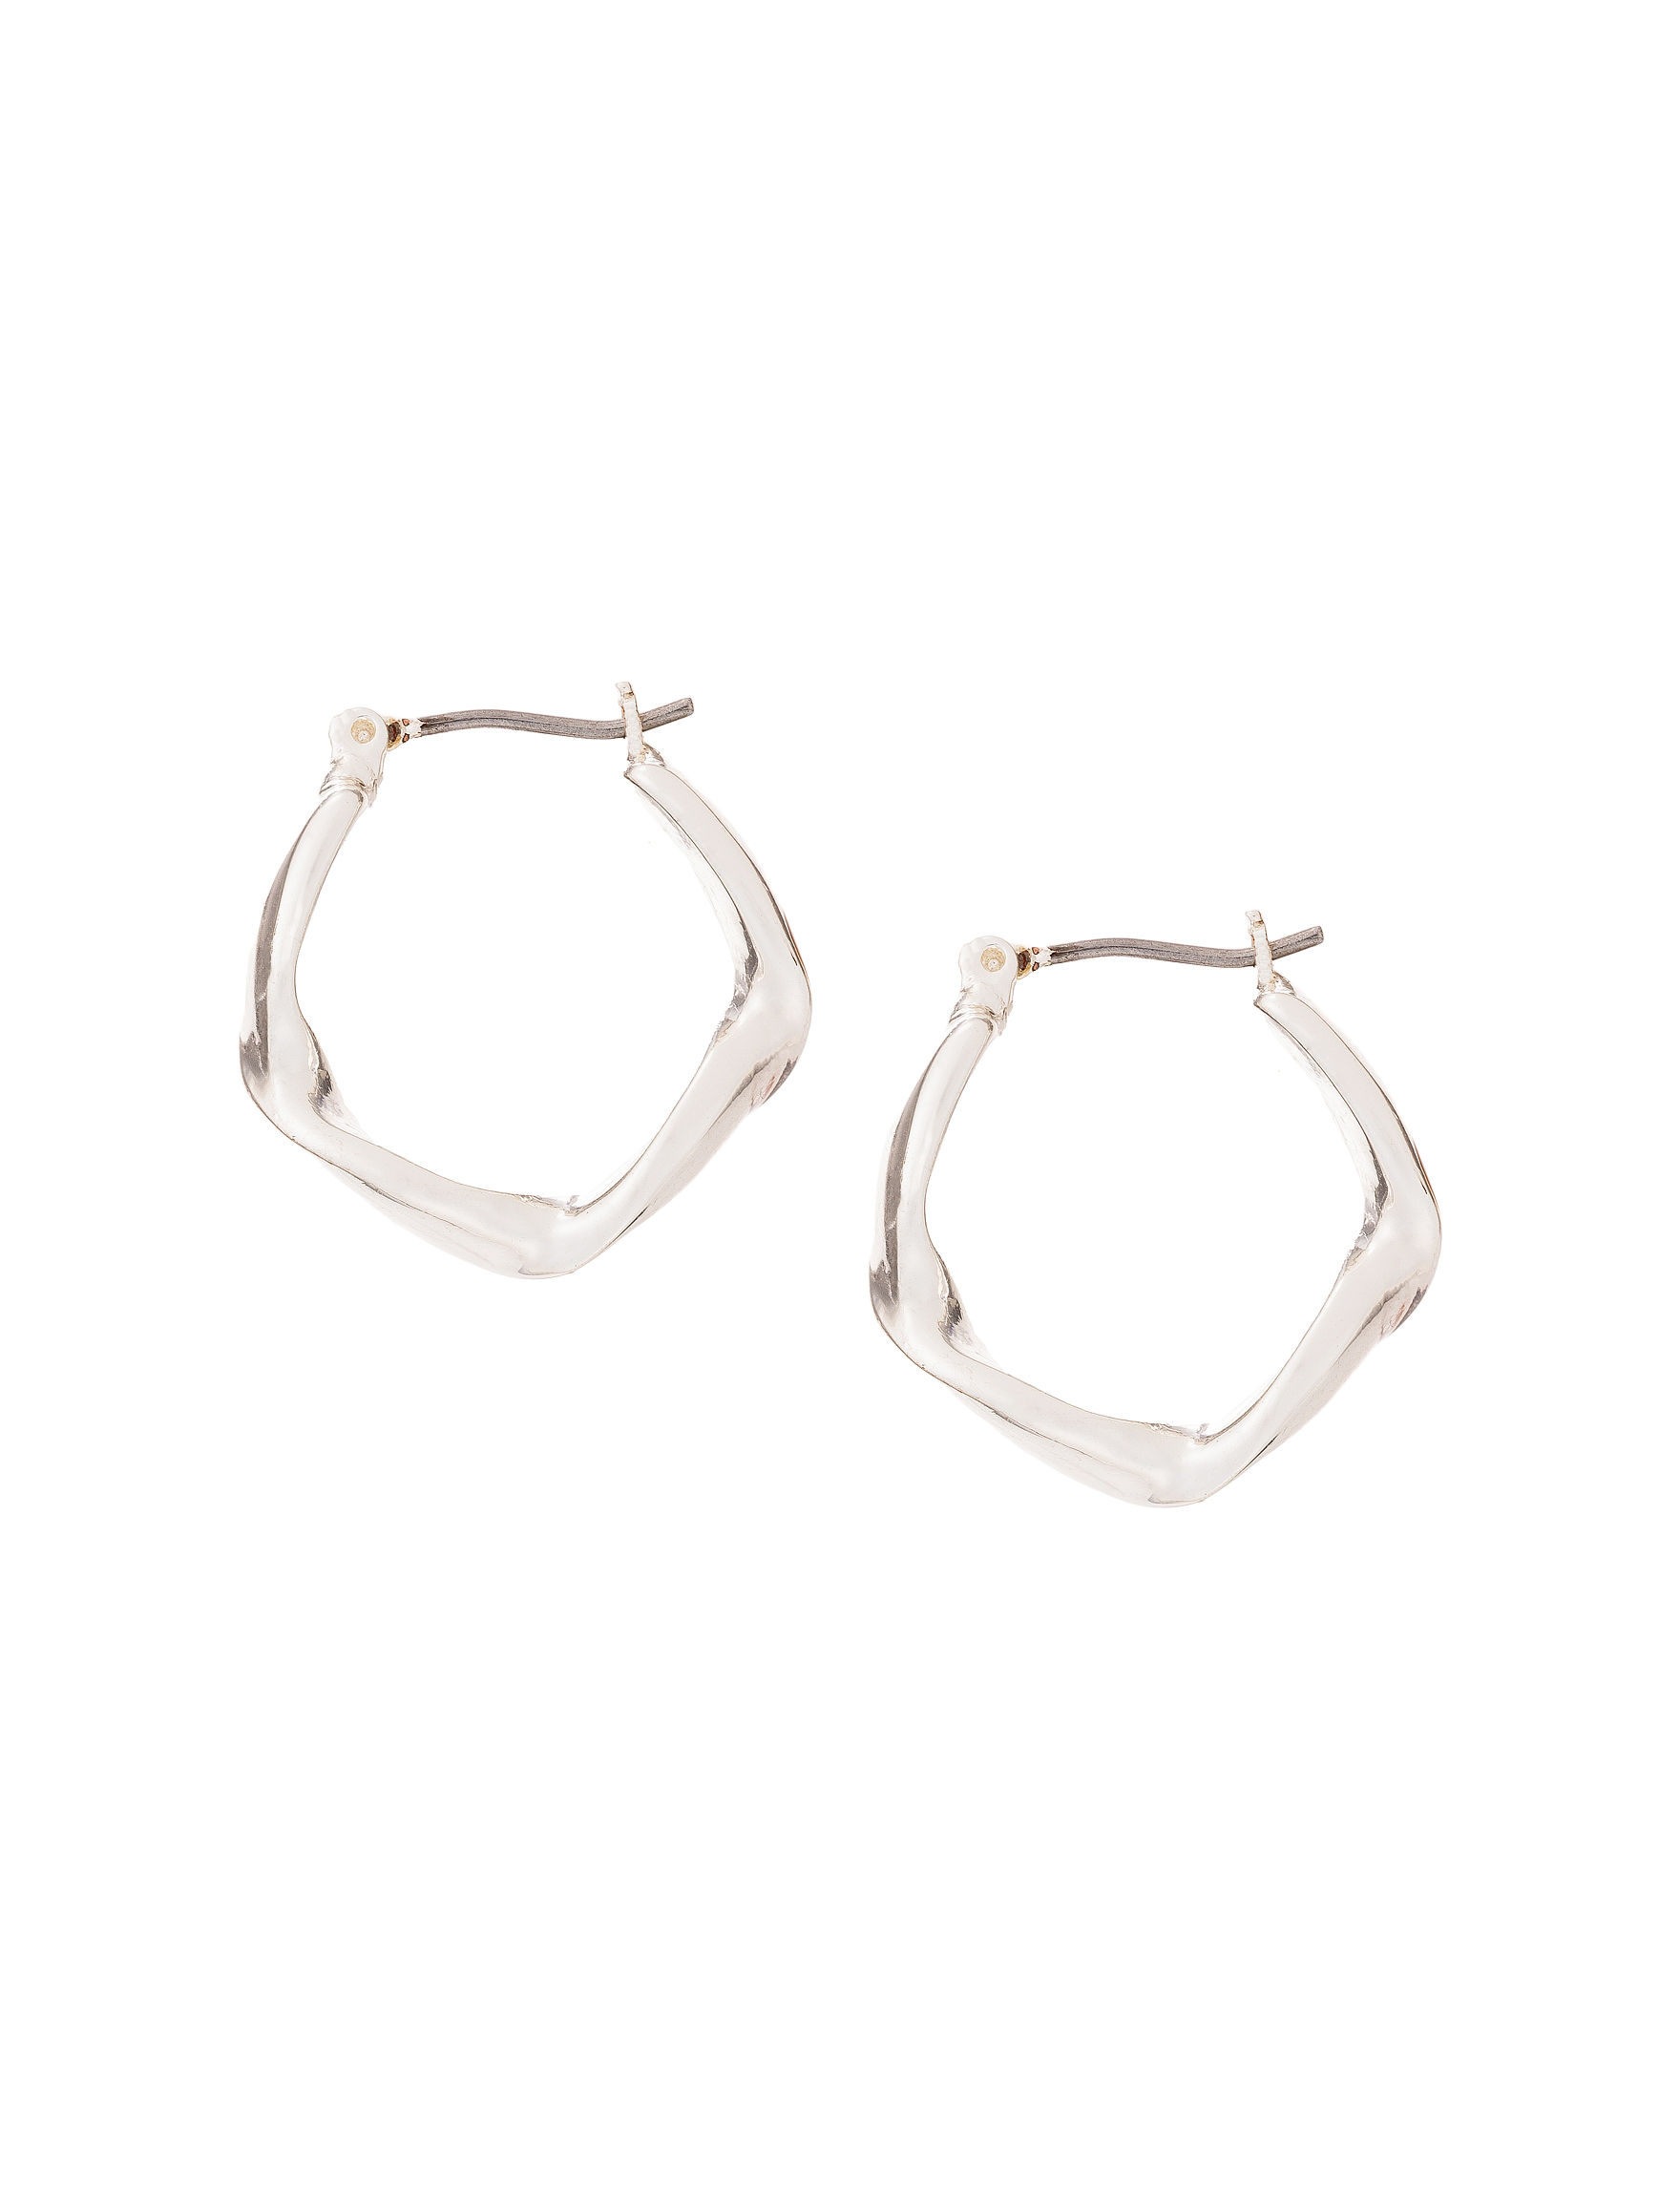 Roman White / Silver Hoops Earrings Fashion Jewelry